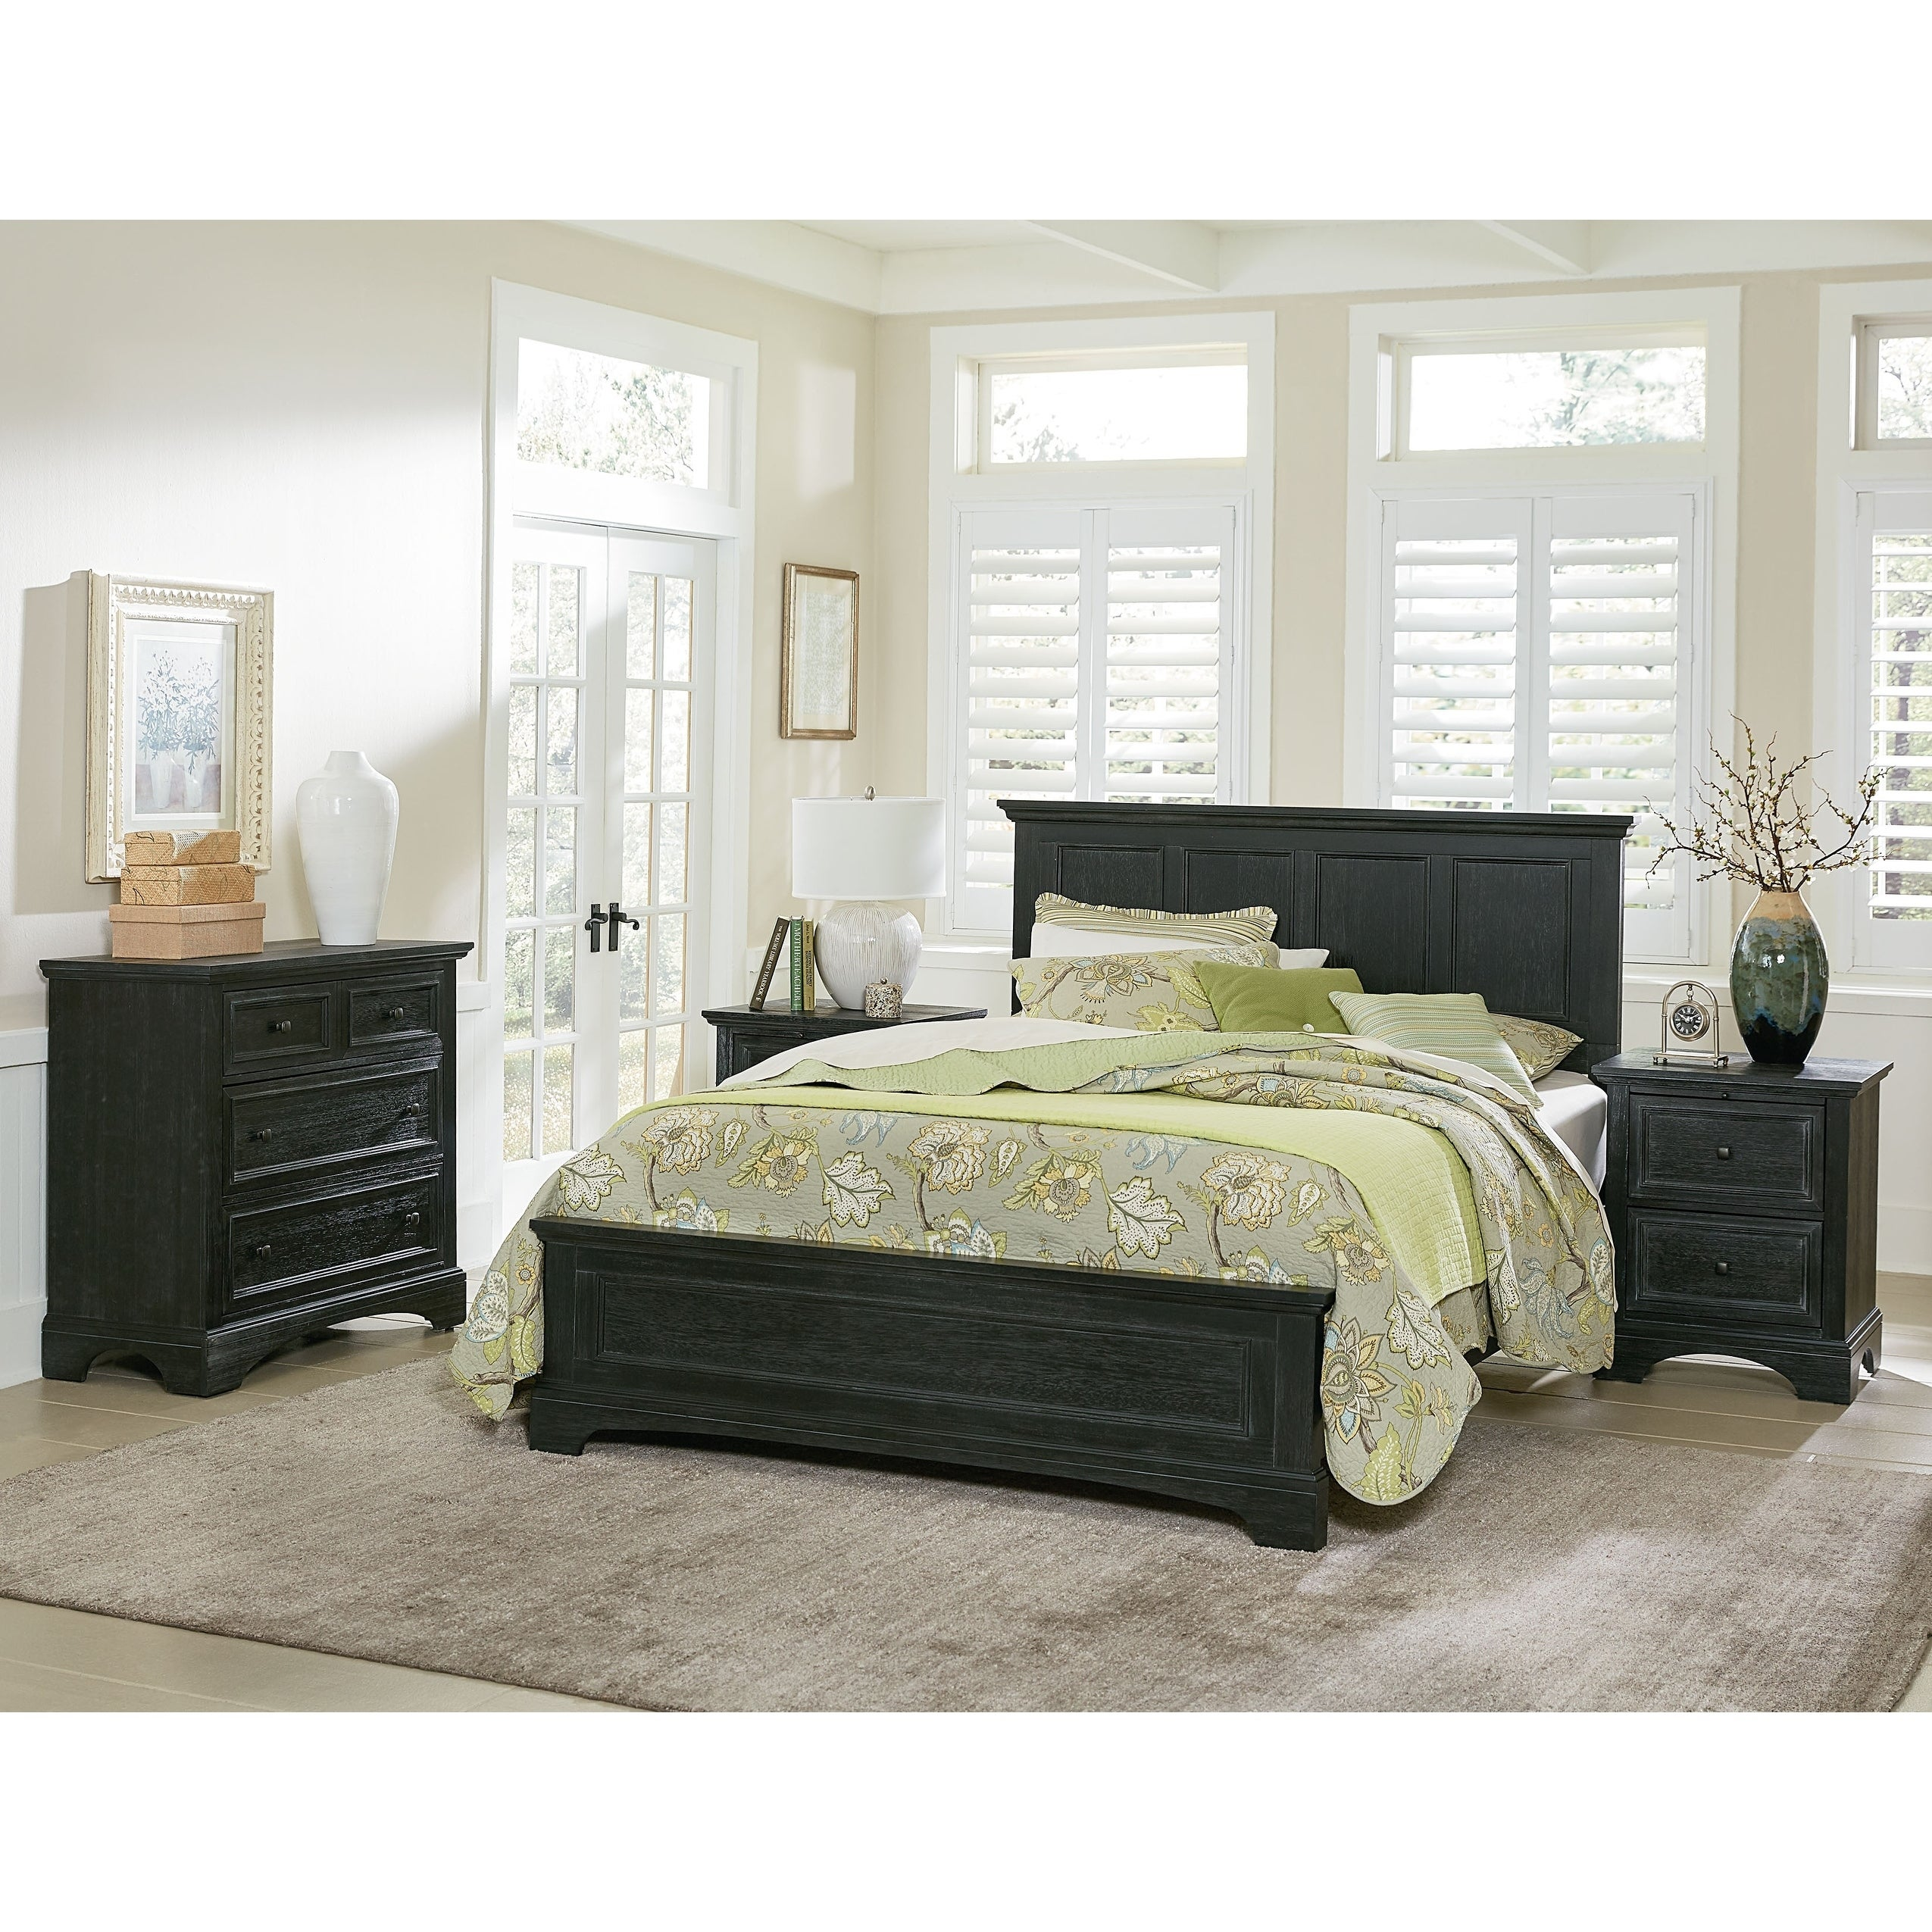 Charmant OSP Home Furnishings Farmhouse Basics King Bedroom Set With 2 Nightstands,  1 Vanity And Bench, And 1 Chest